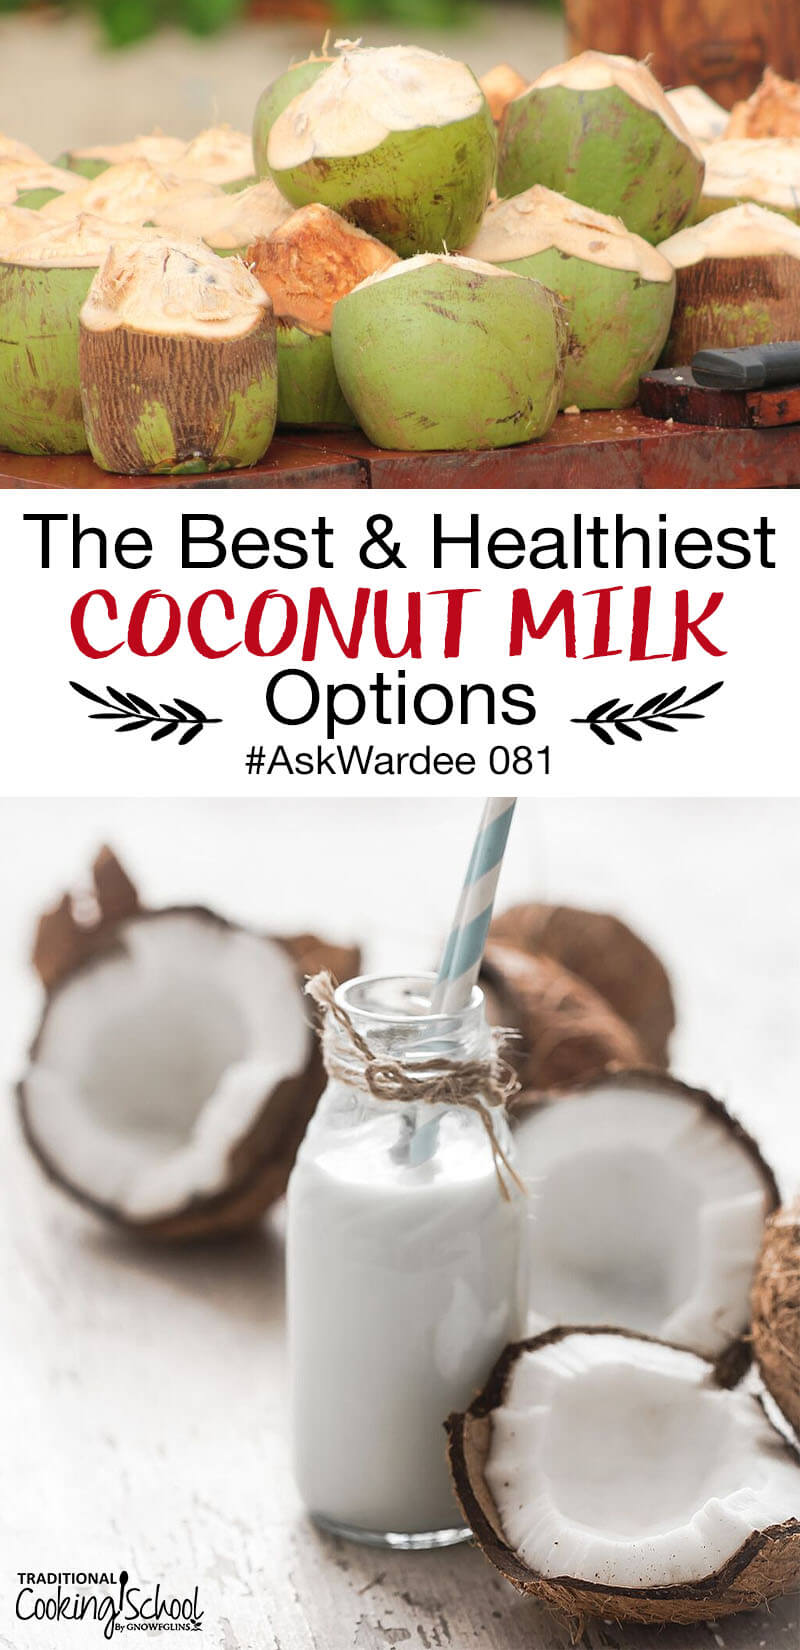 "Pinterest Pin image of a pile of green coconuts cut open. And another image of the brown coconuts broken open to reveal the white flesh and a bottle of coconut milk with a blue and white striped straw. Text overlay says, ""The Best & Healthiest Coconut Milk Options #AskWardee 081"""